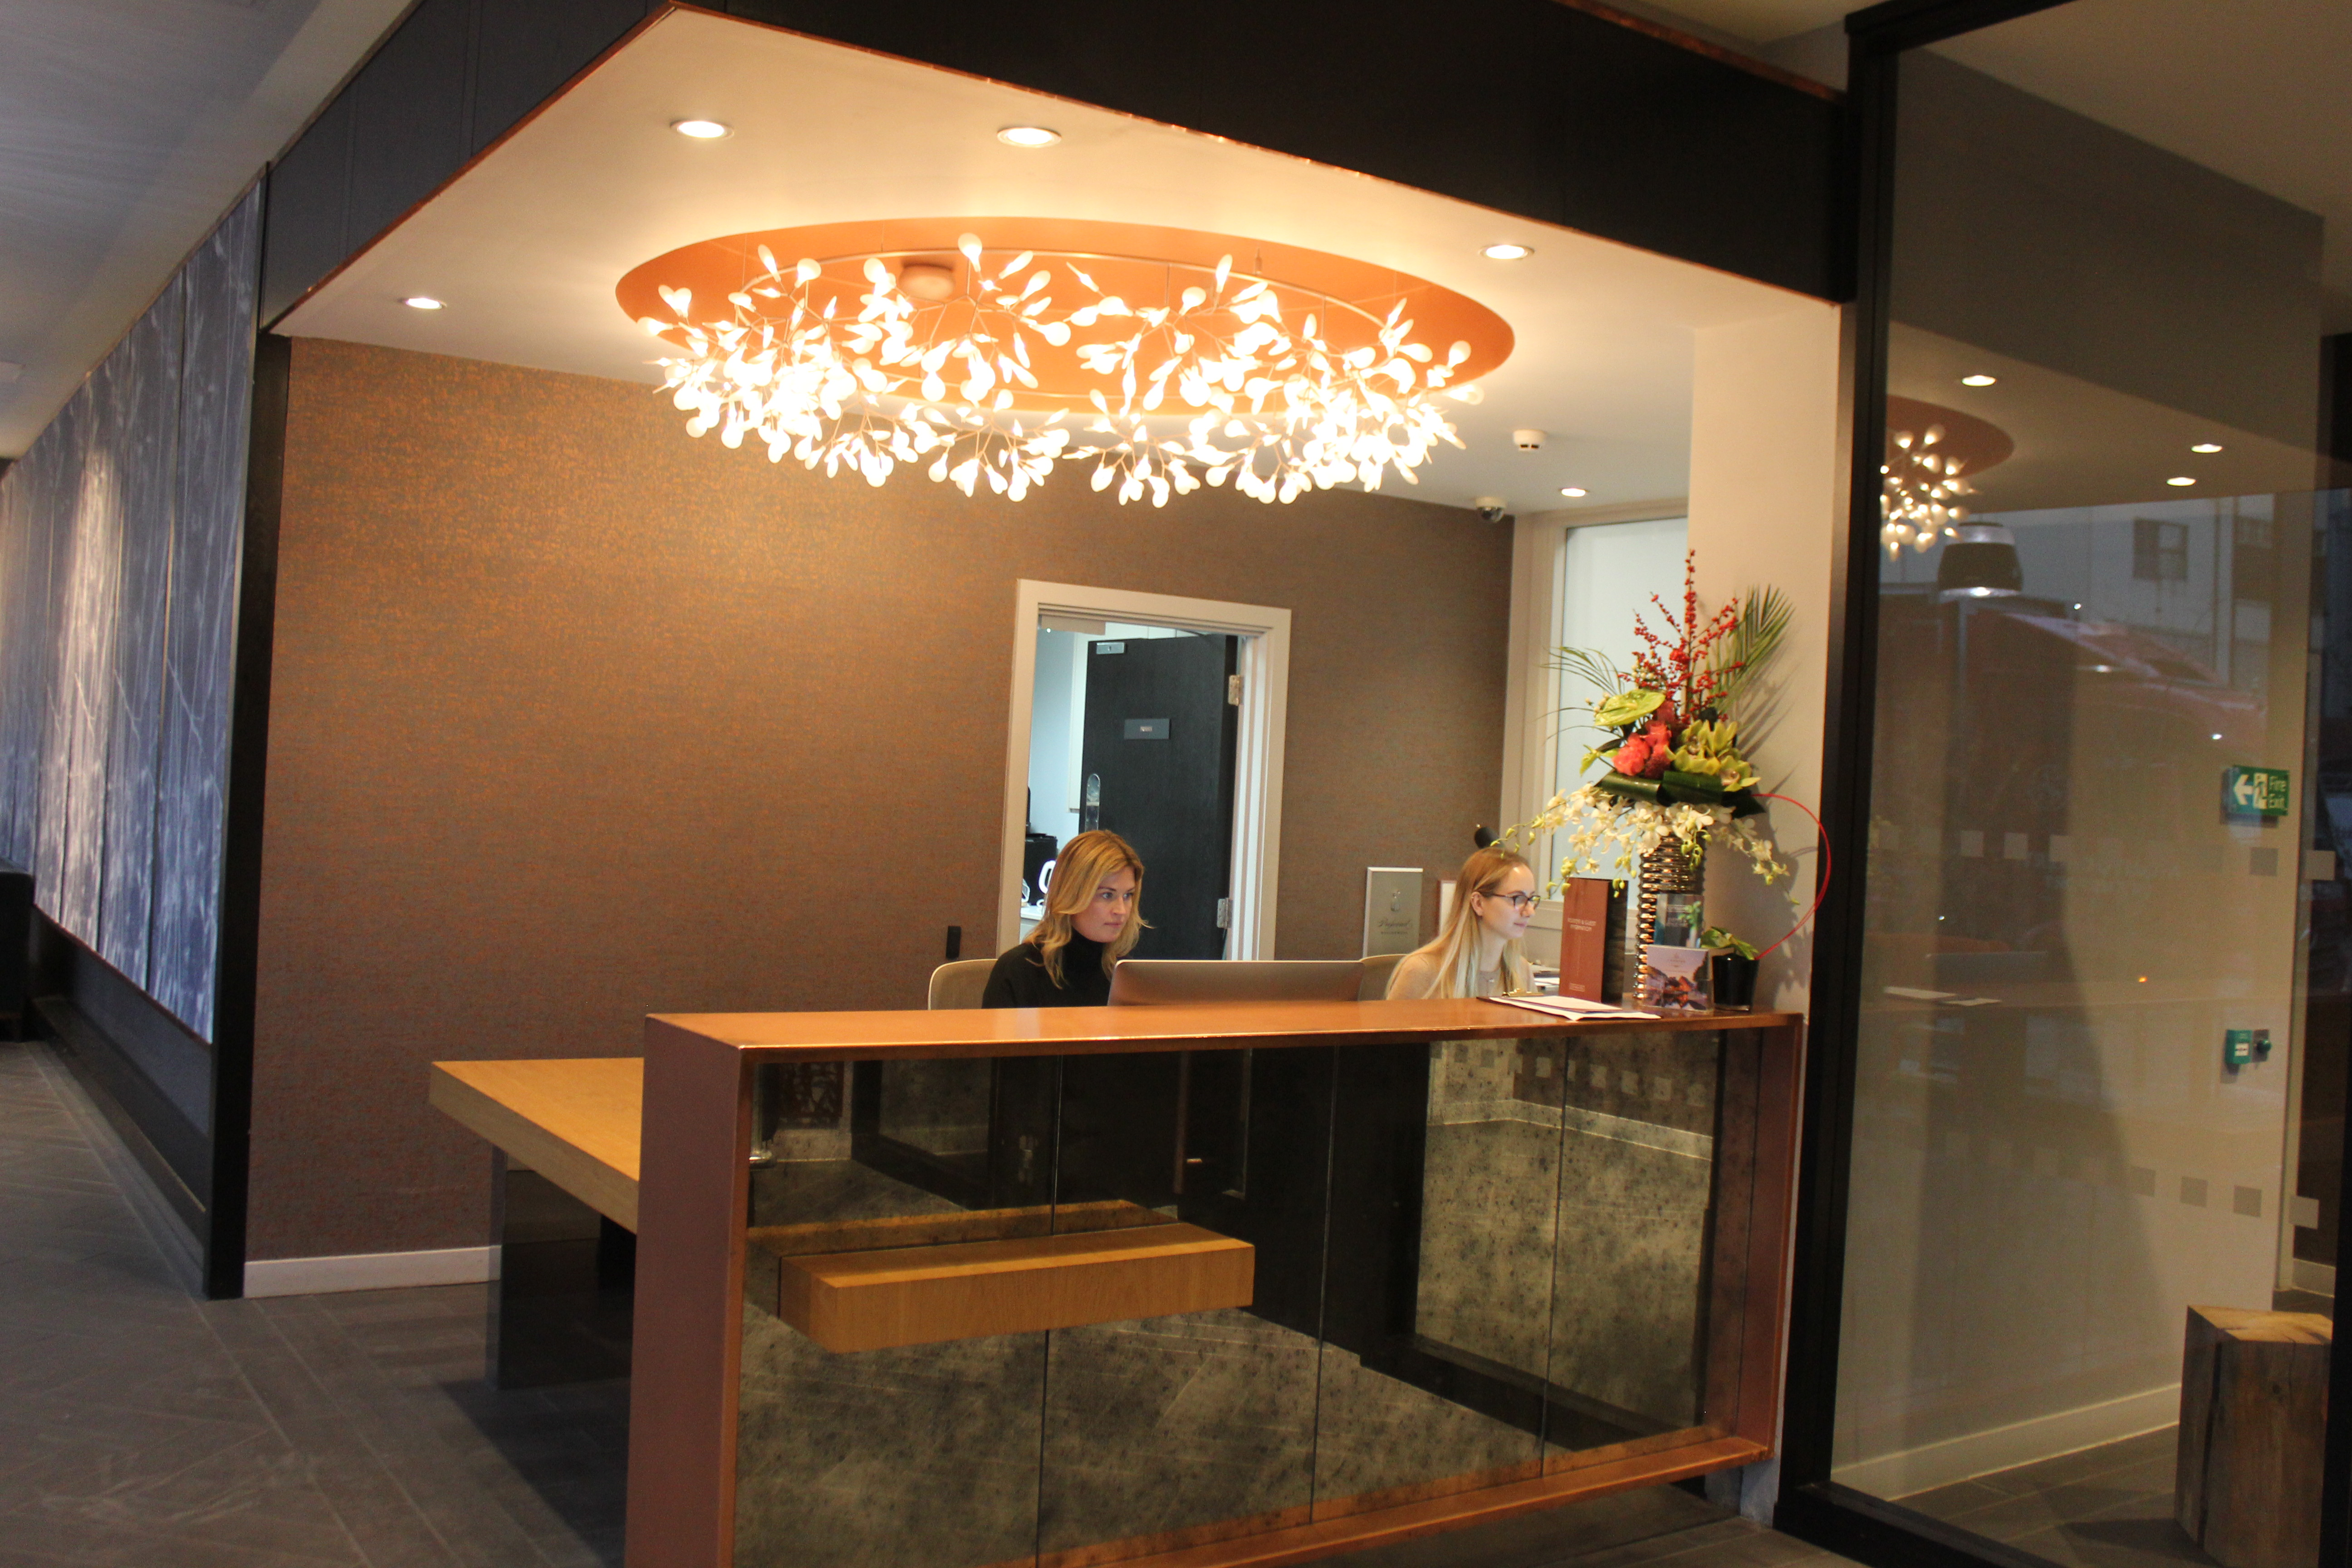 Reception Desk In The Evening (1)